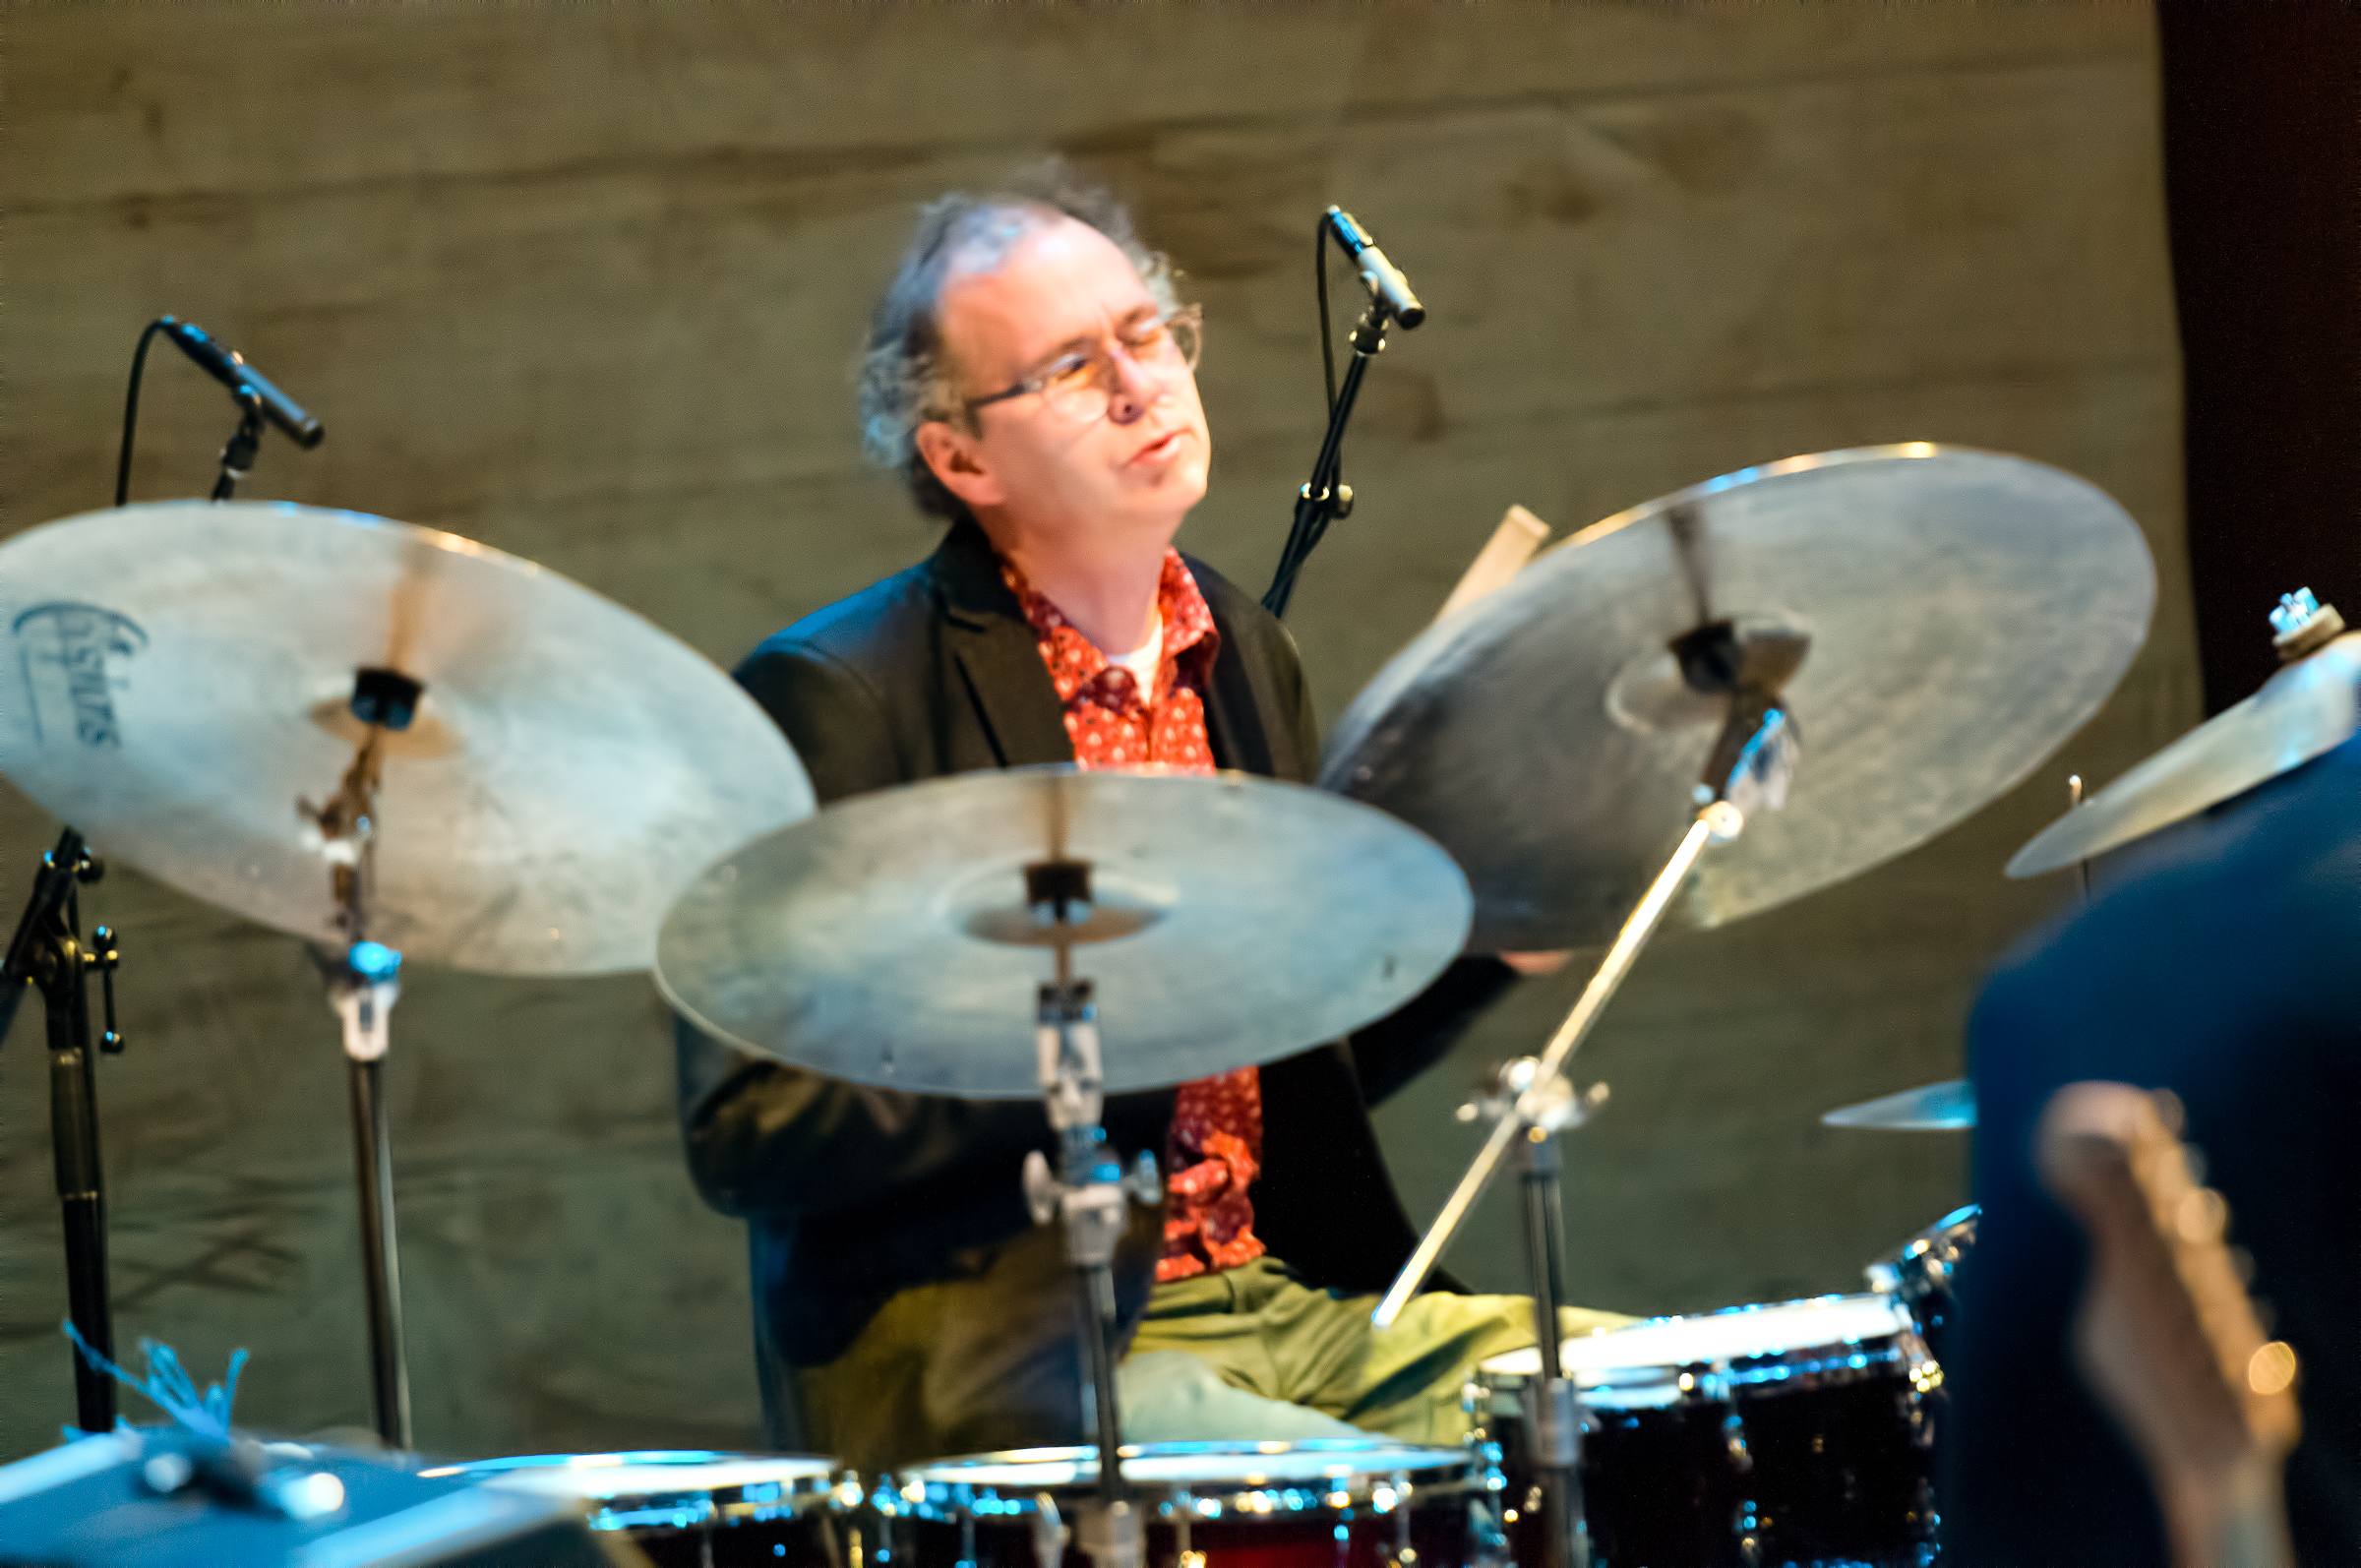 Kenny Wollesen with the Bill Frisell Quartet at the Musical Instruments Museum (Mim) in Phoenix